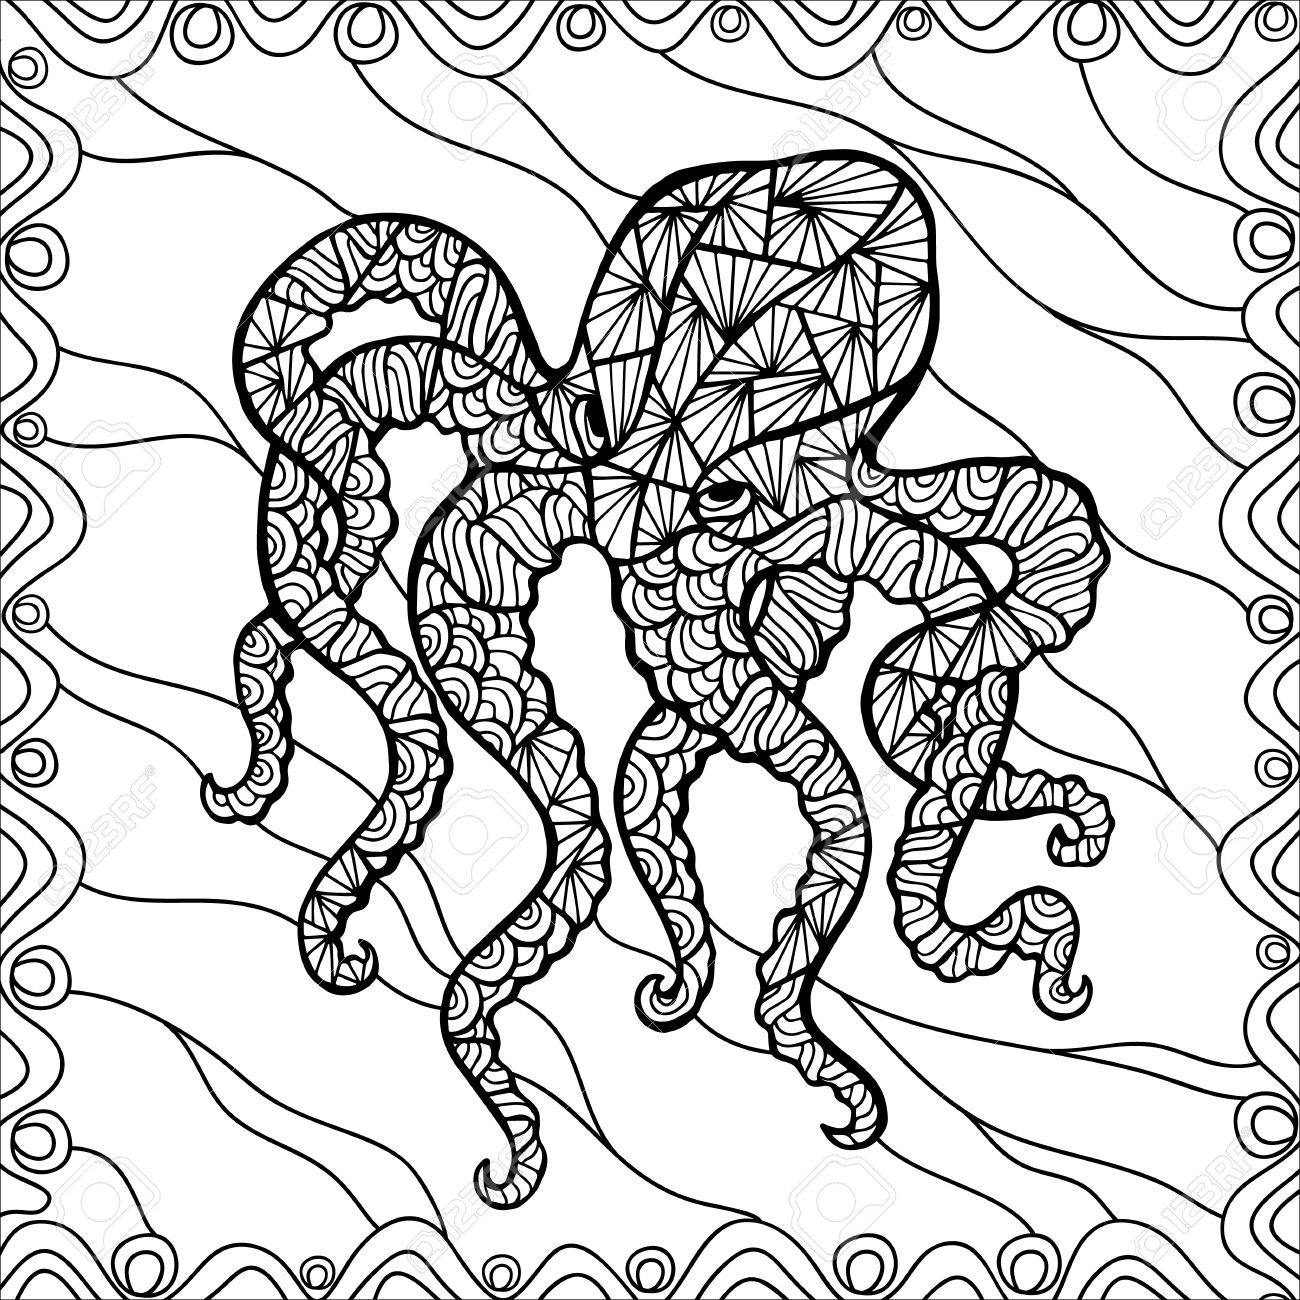 stylized vector octopus isolated on white background can be